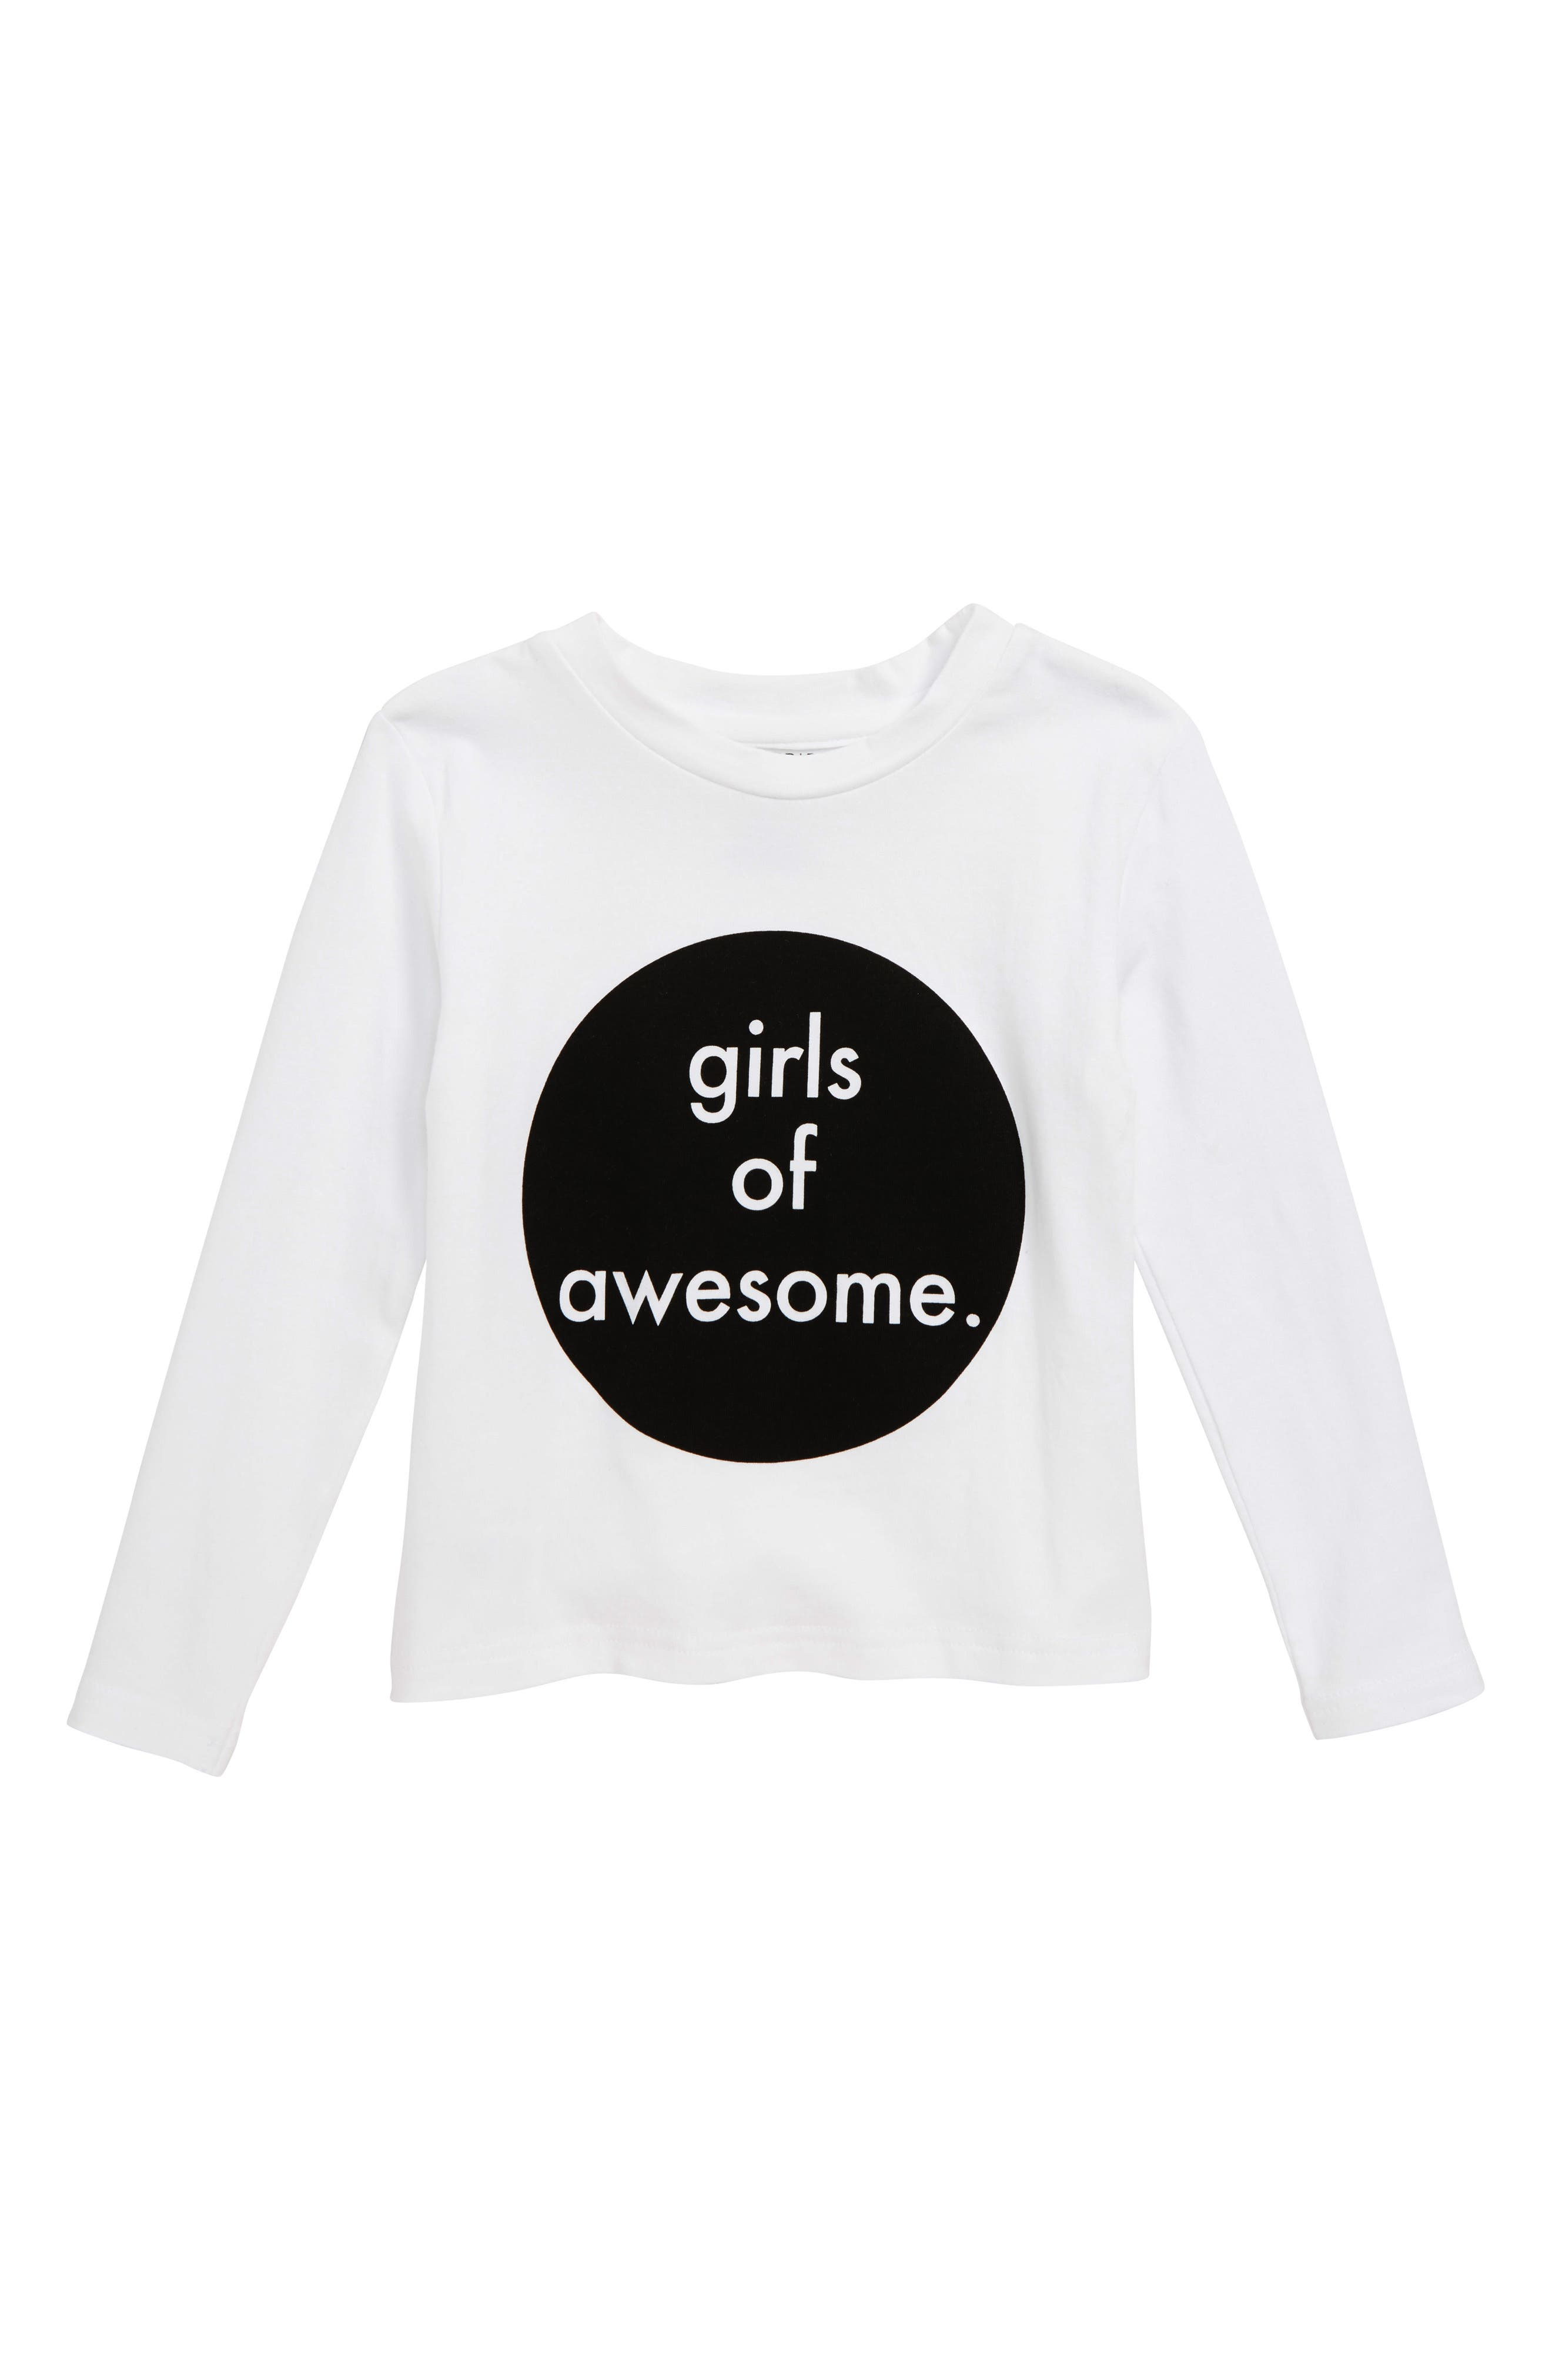 Awesome Girls Tee,                             Main thumbnail 1, color,                             WHITE / BLACK